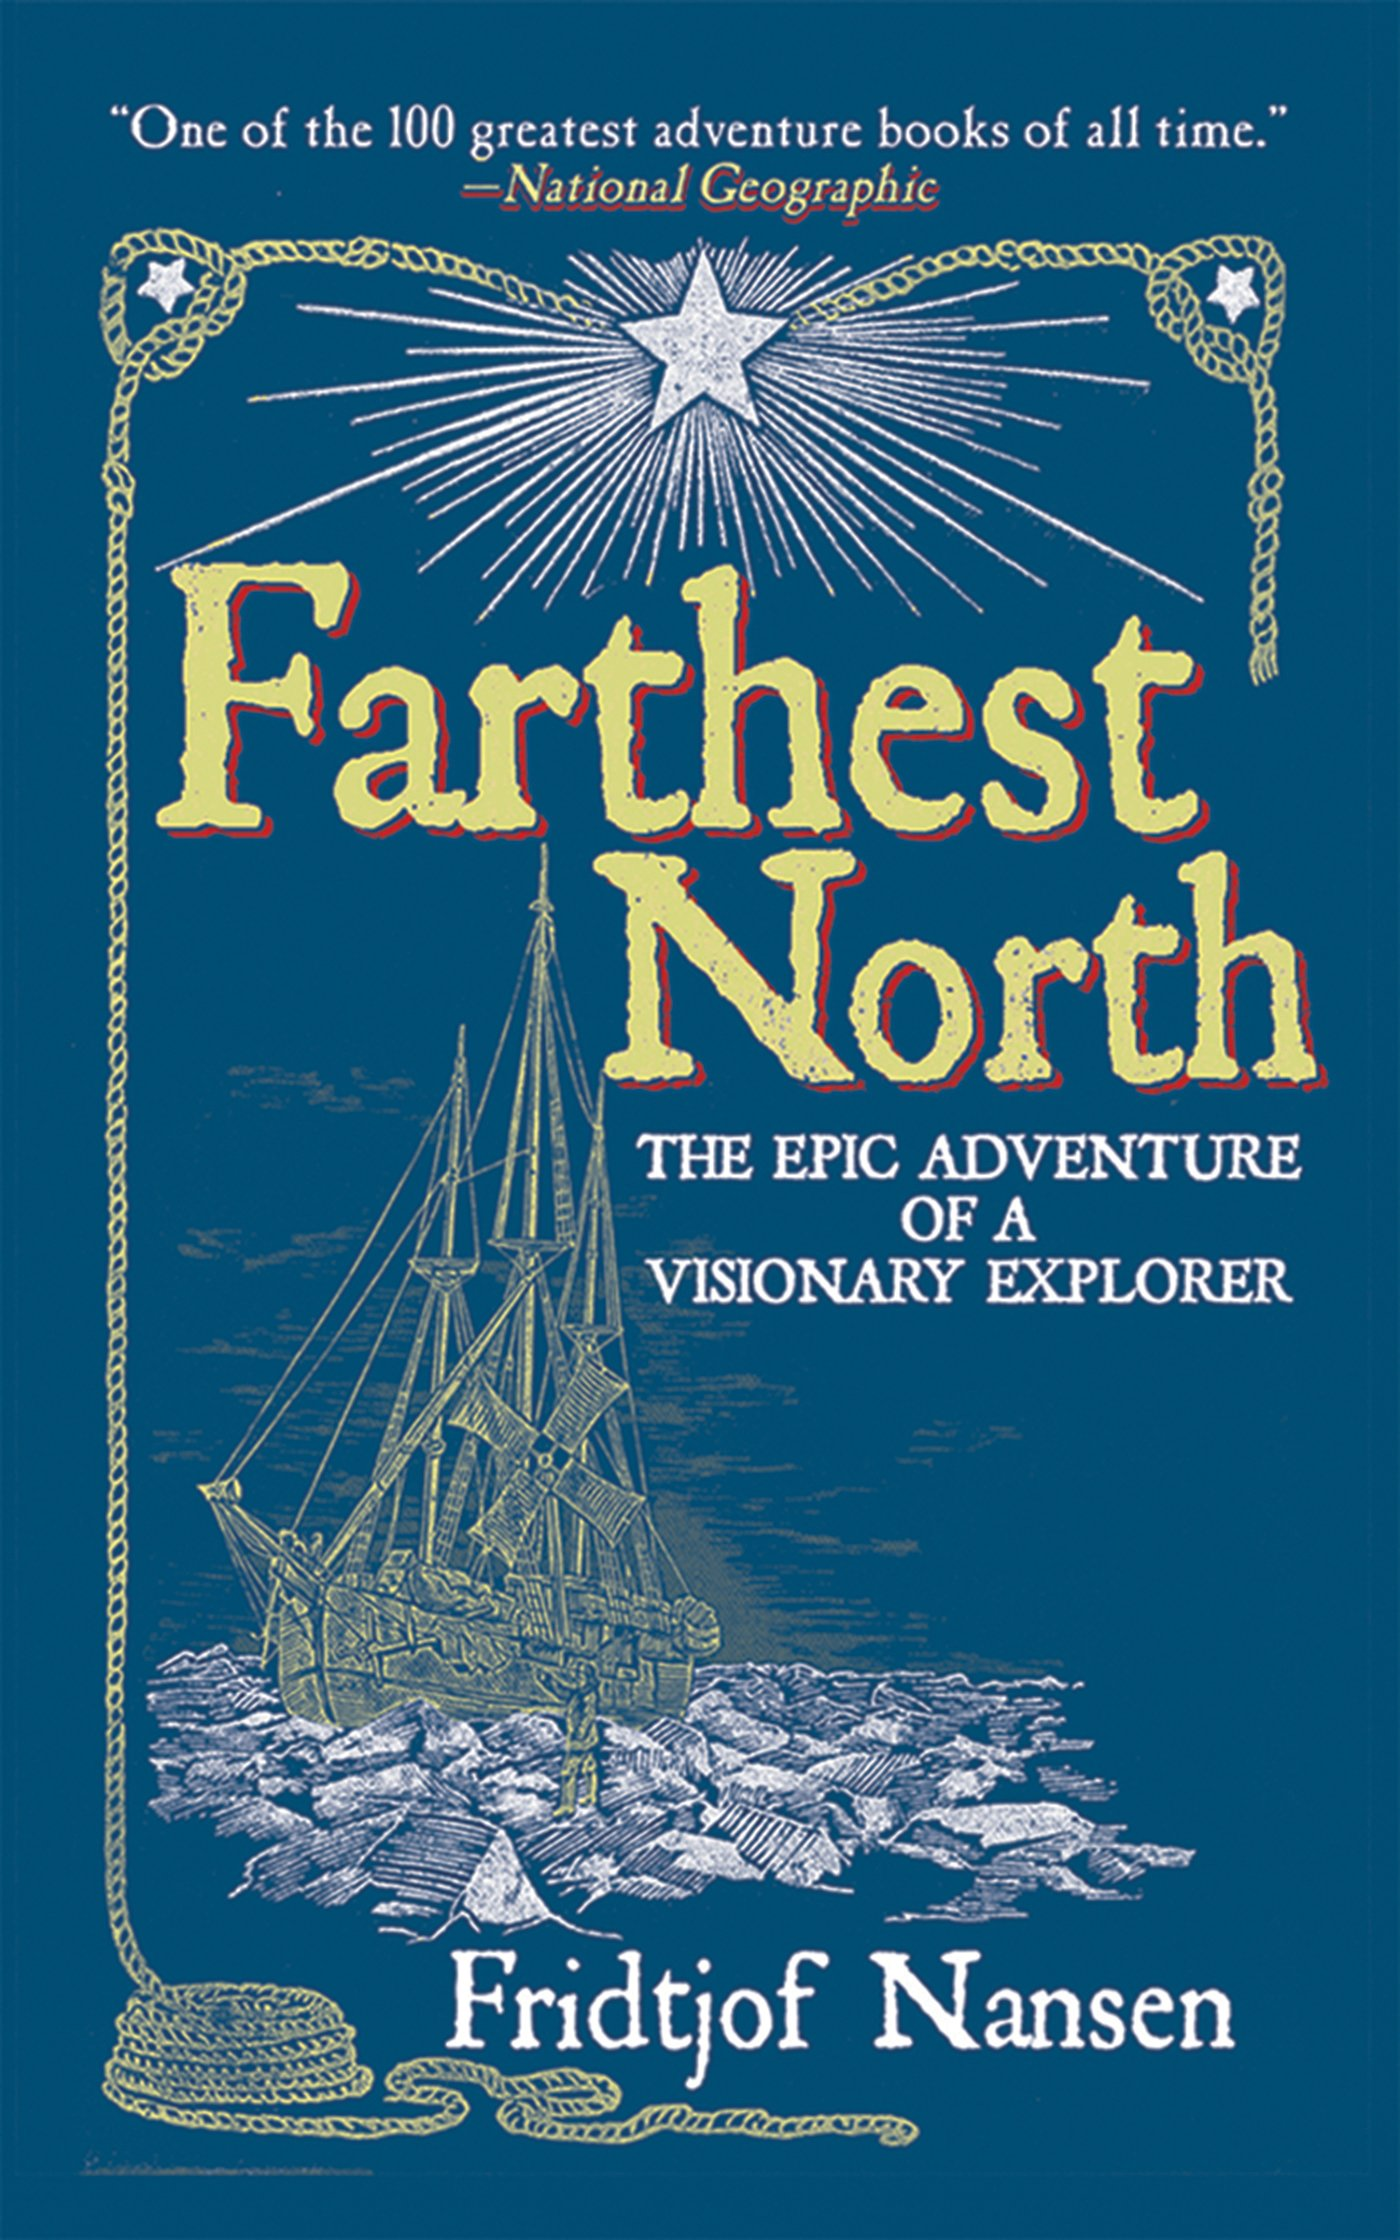 Farthest North The Epic Adventure of a Visionary Explorer Fridtjof